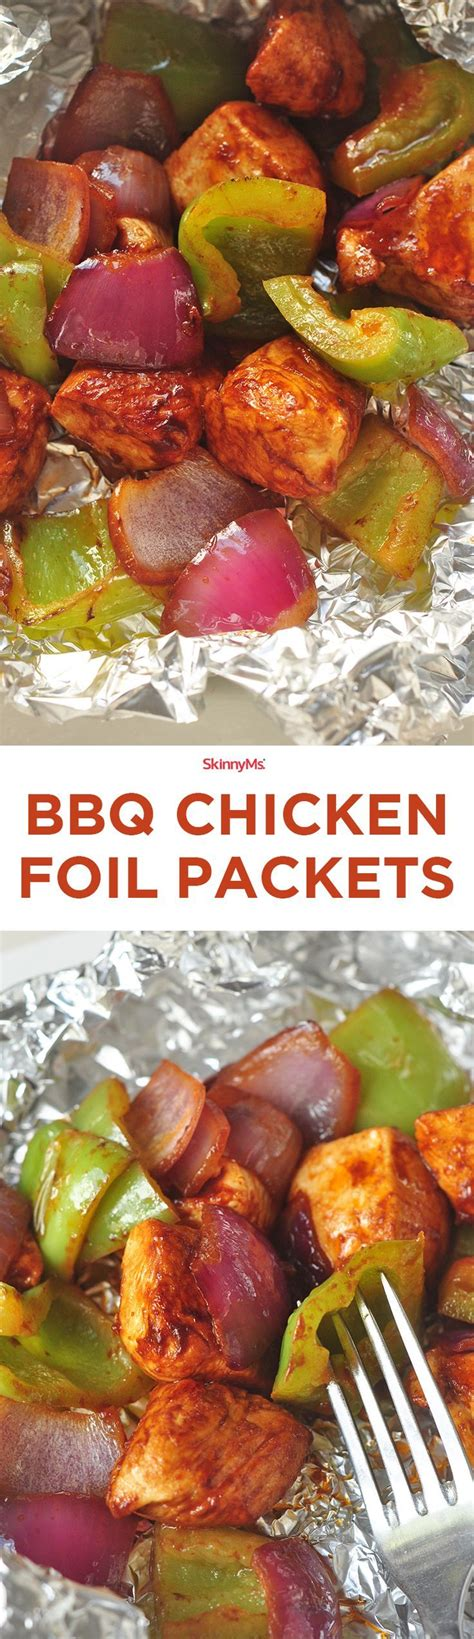 foil chicken packets bbq chicken foil packets recipe barbecues grilling and dishes